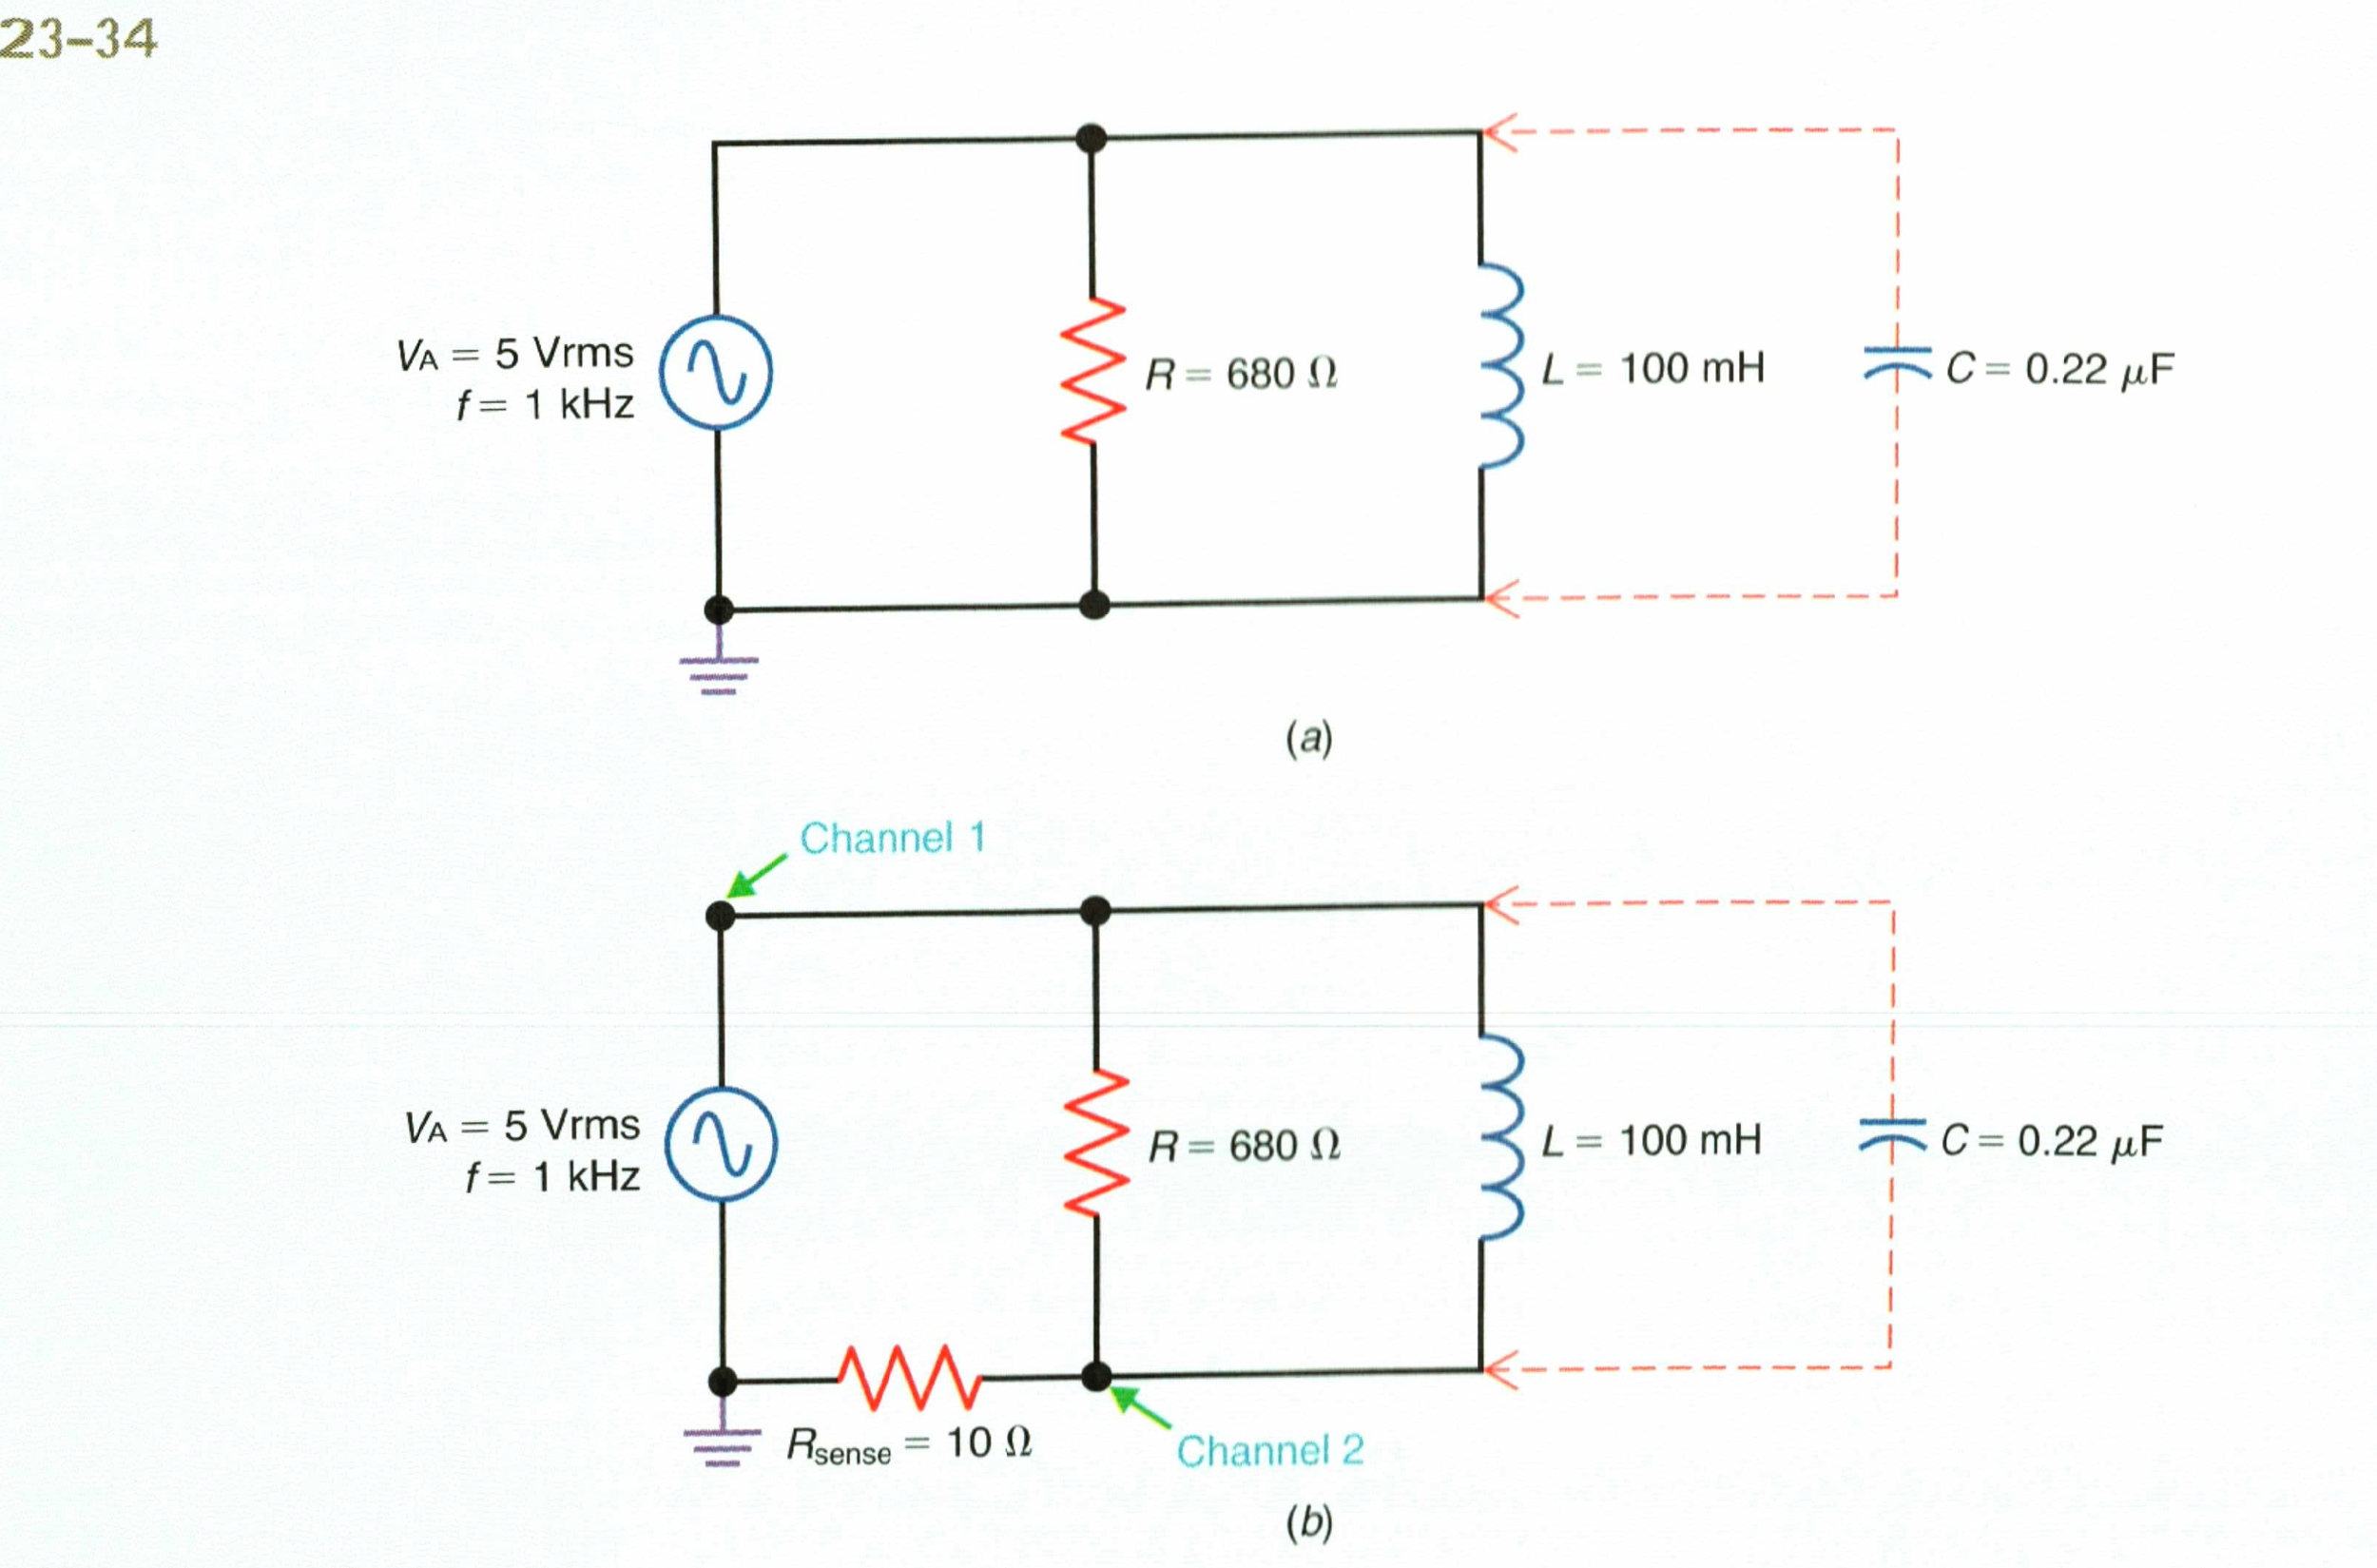 Examine the parallel RL circuit in Fig 23-34a(igno